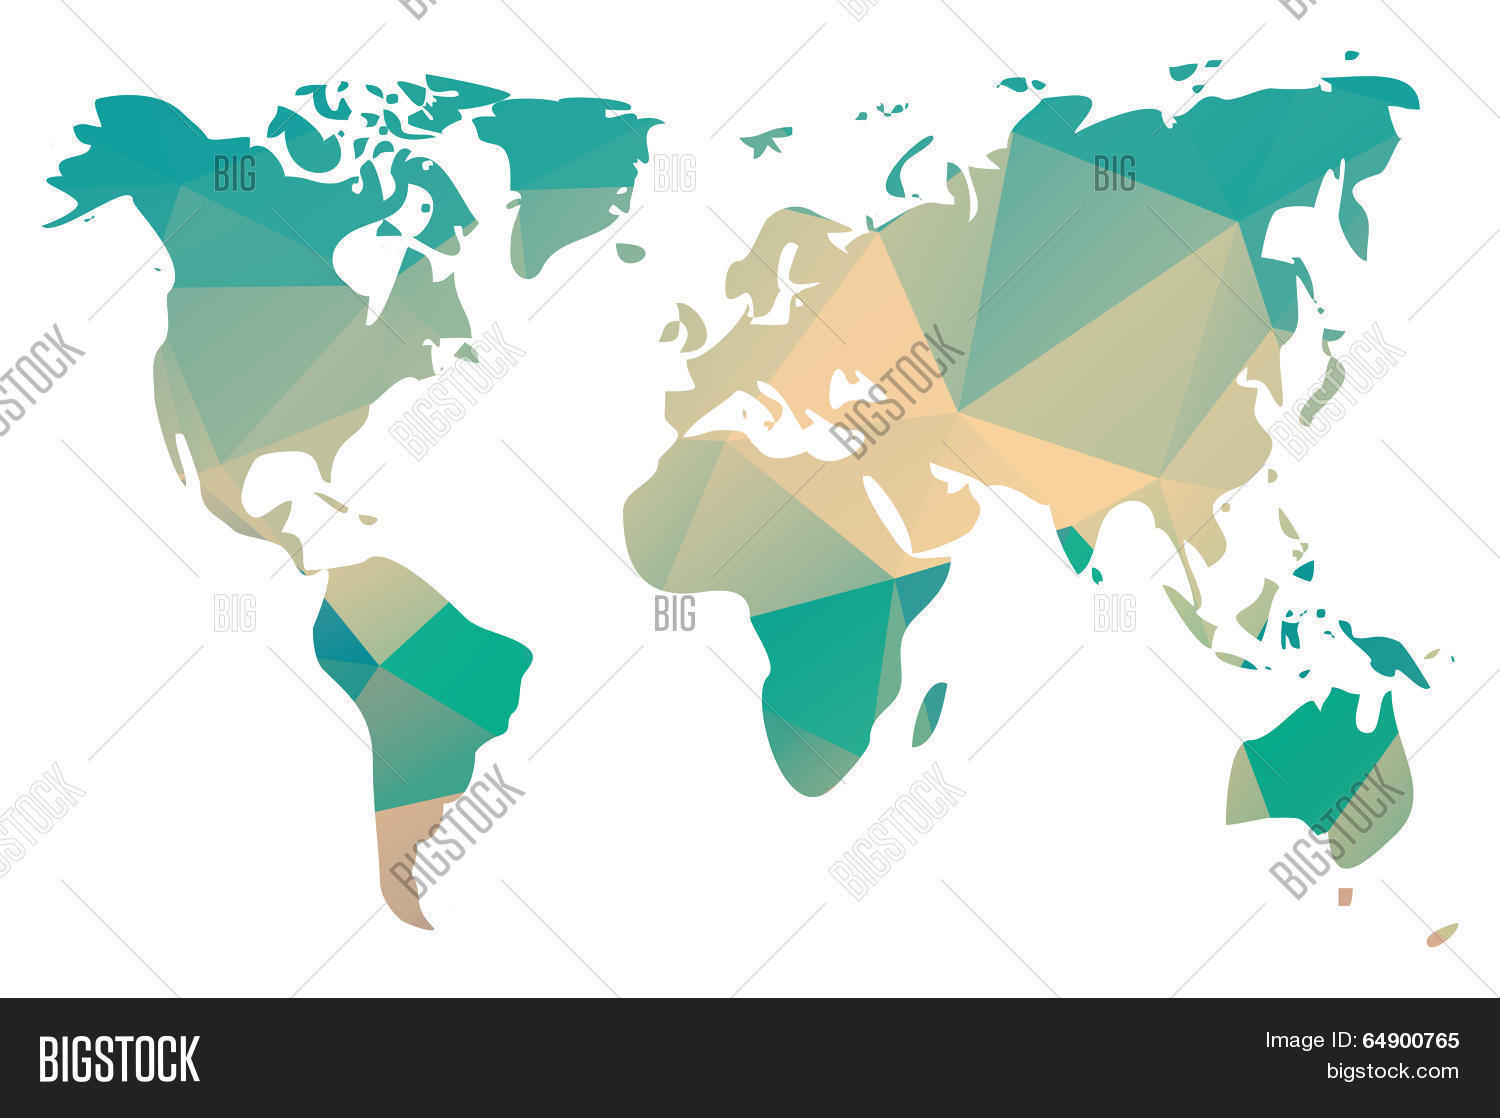 Vector y foto world map triangle geometric bigstock world map in triangle geometric pattern design vector illustration gumiabroncs Gallery